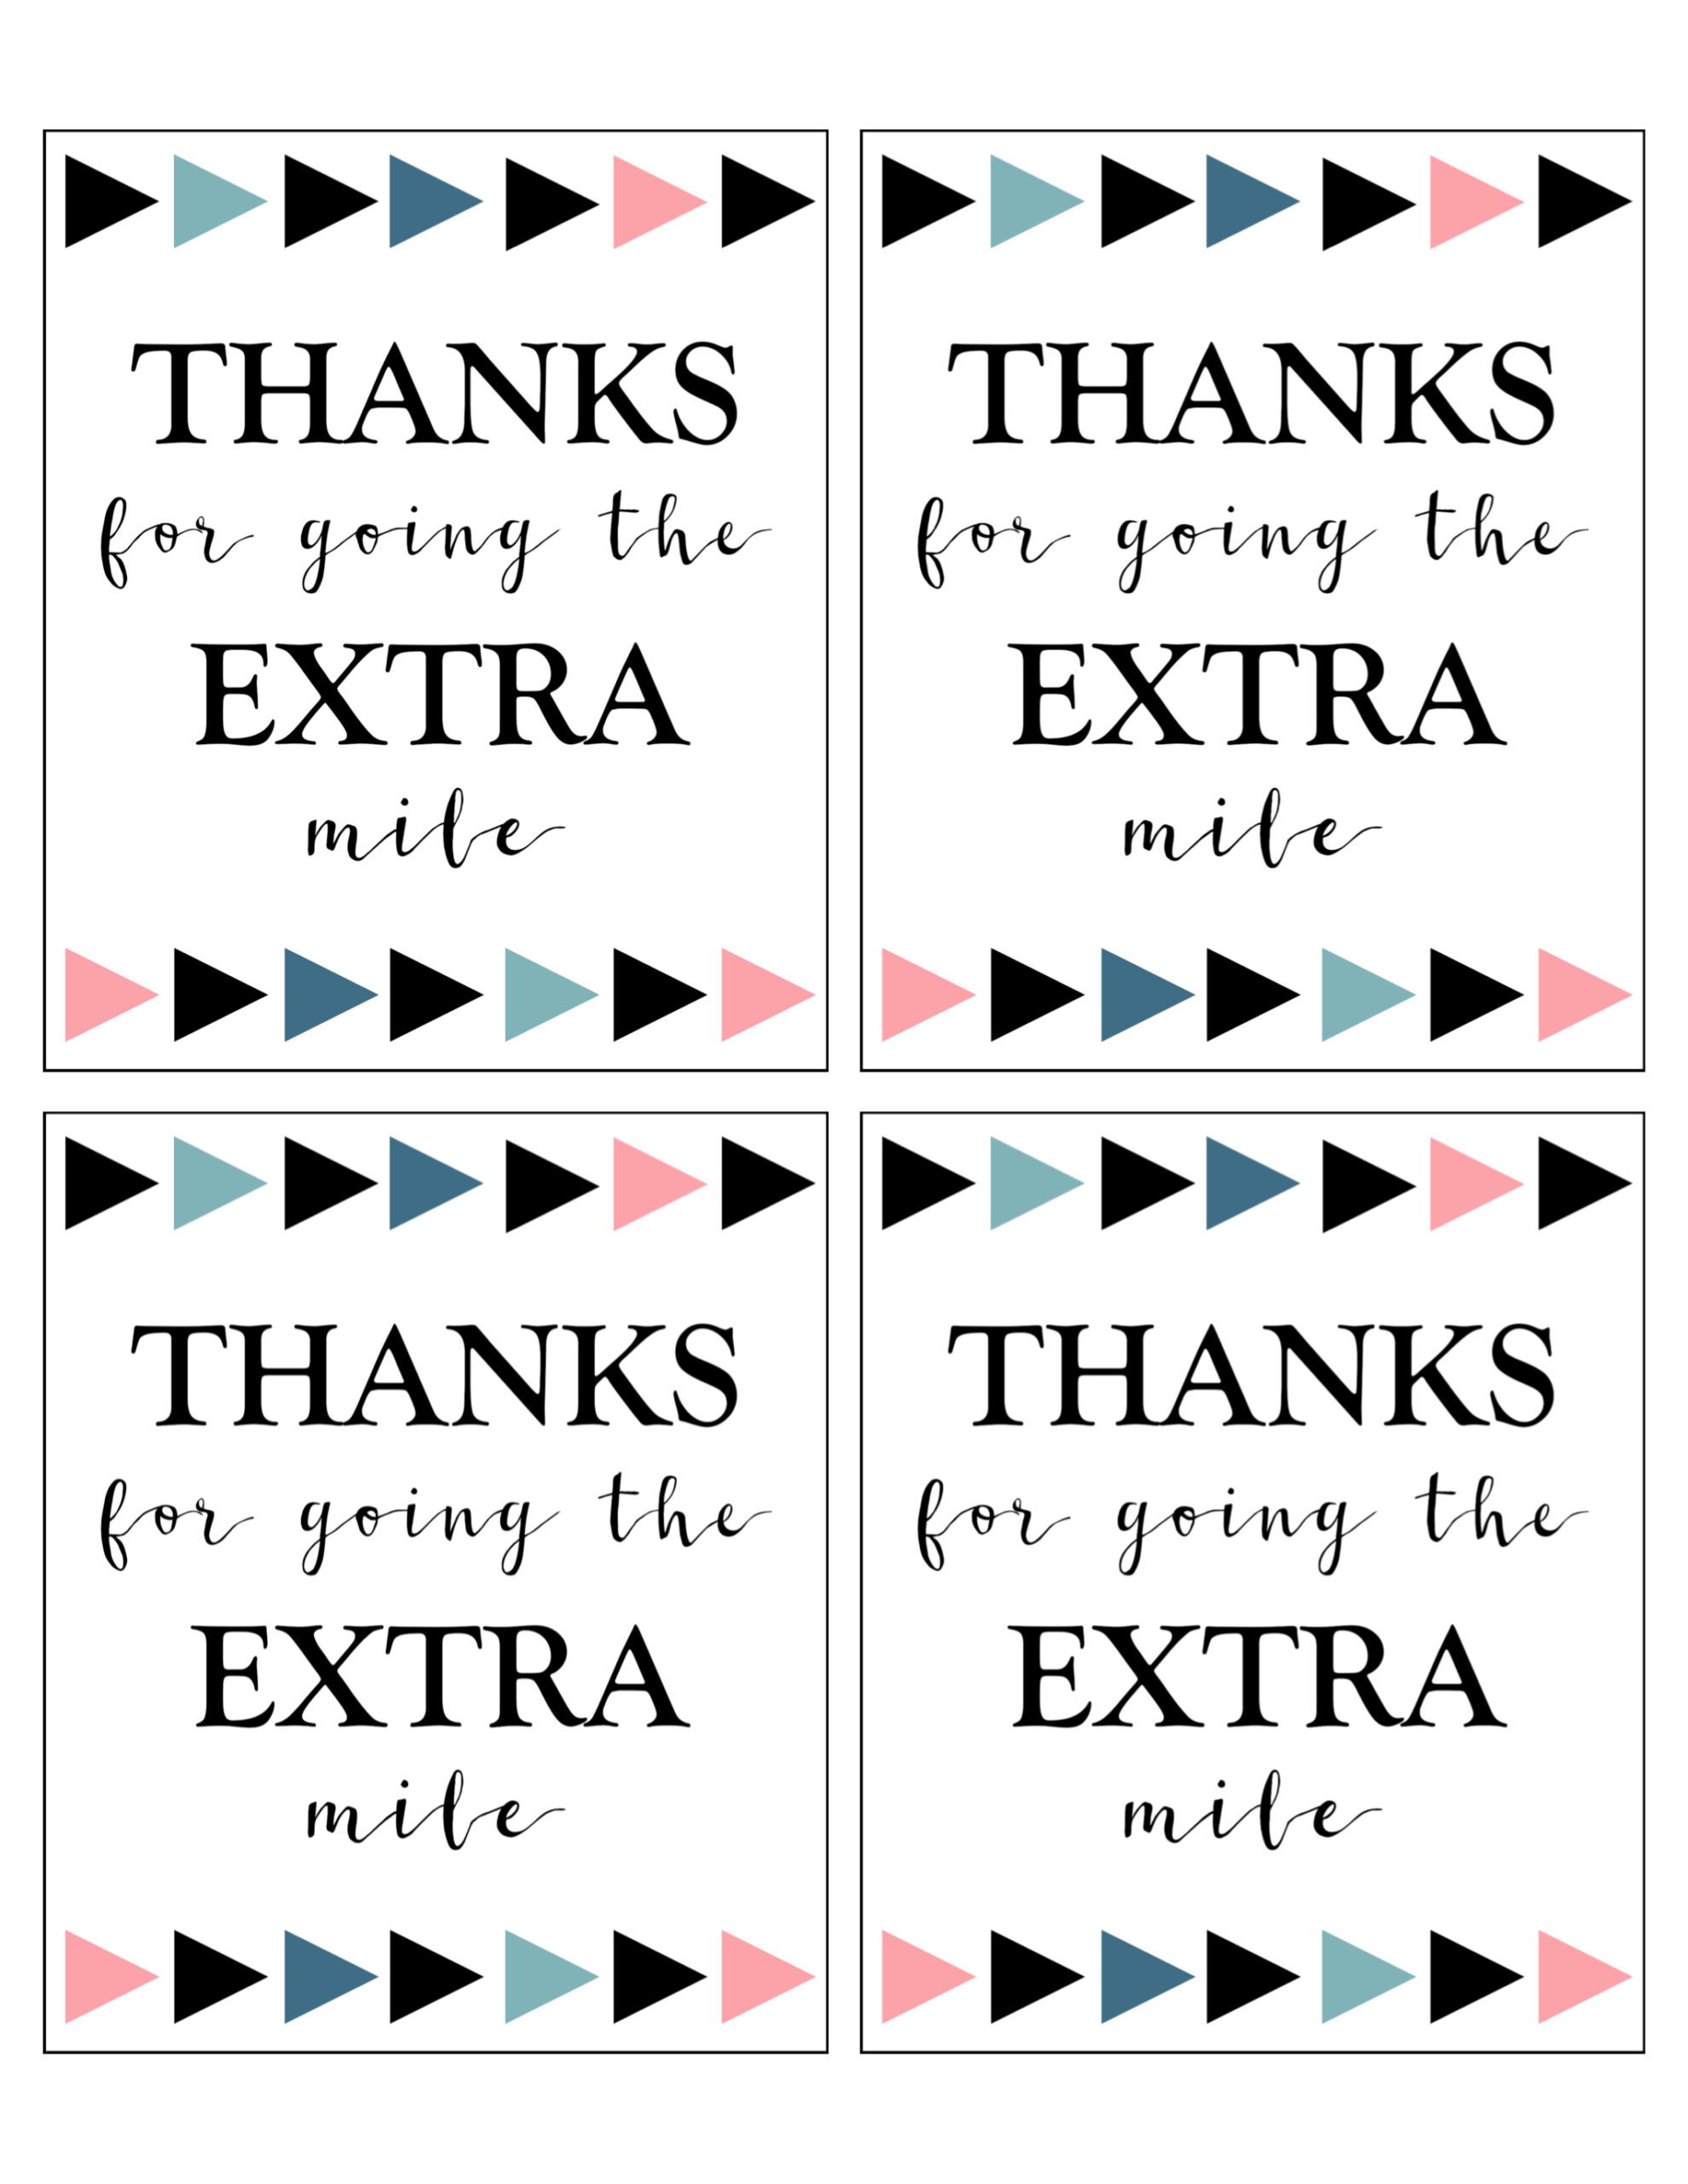 Extra Gum Thank You Printable - Paper Trail Design